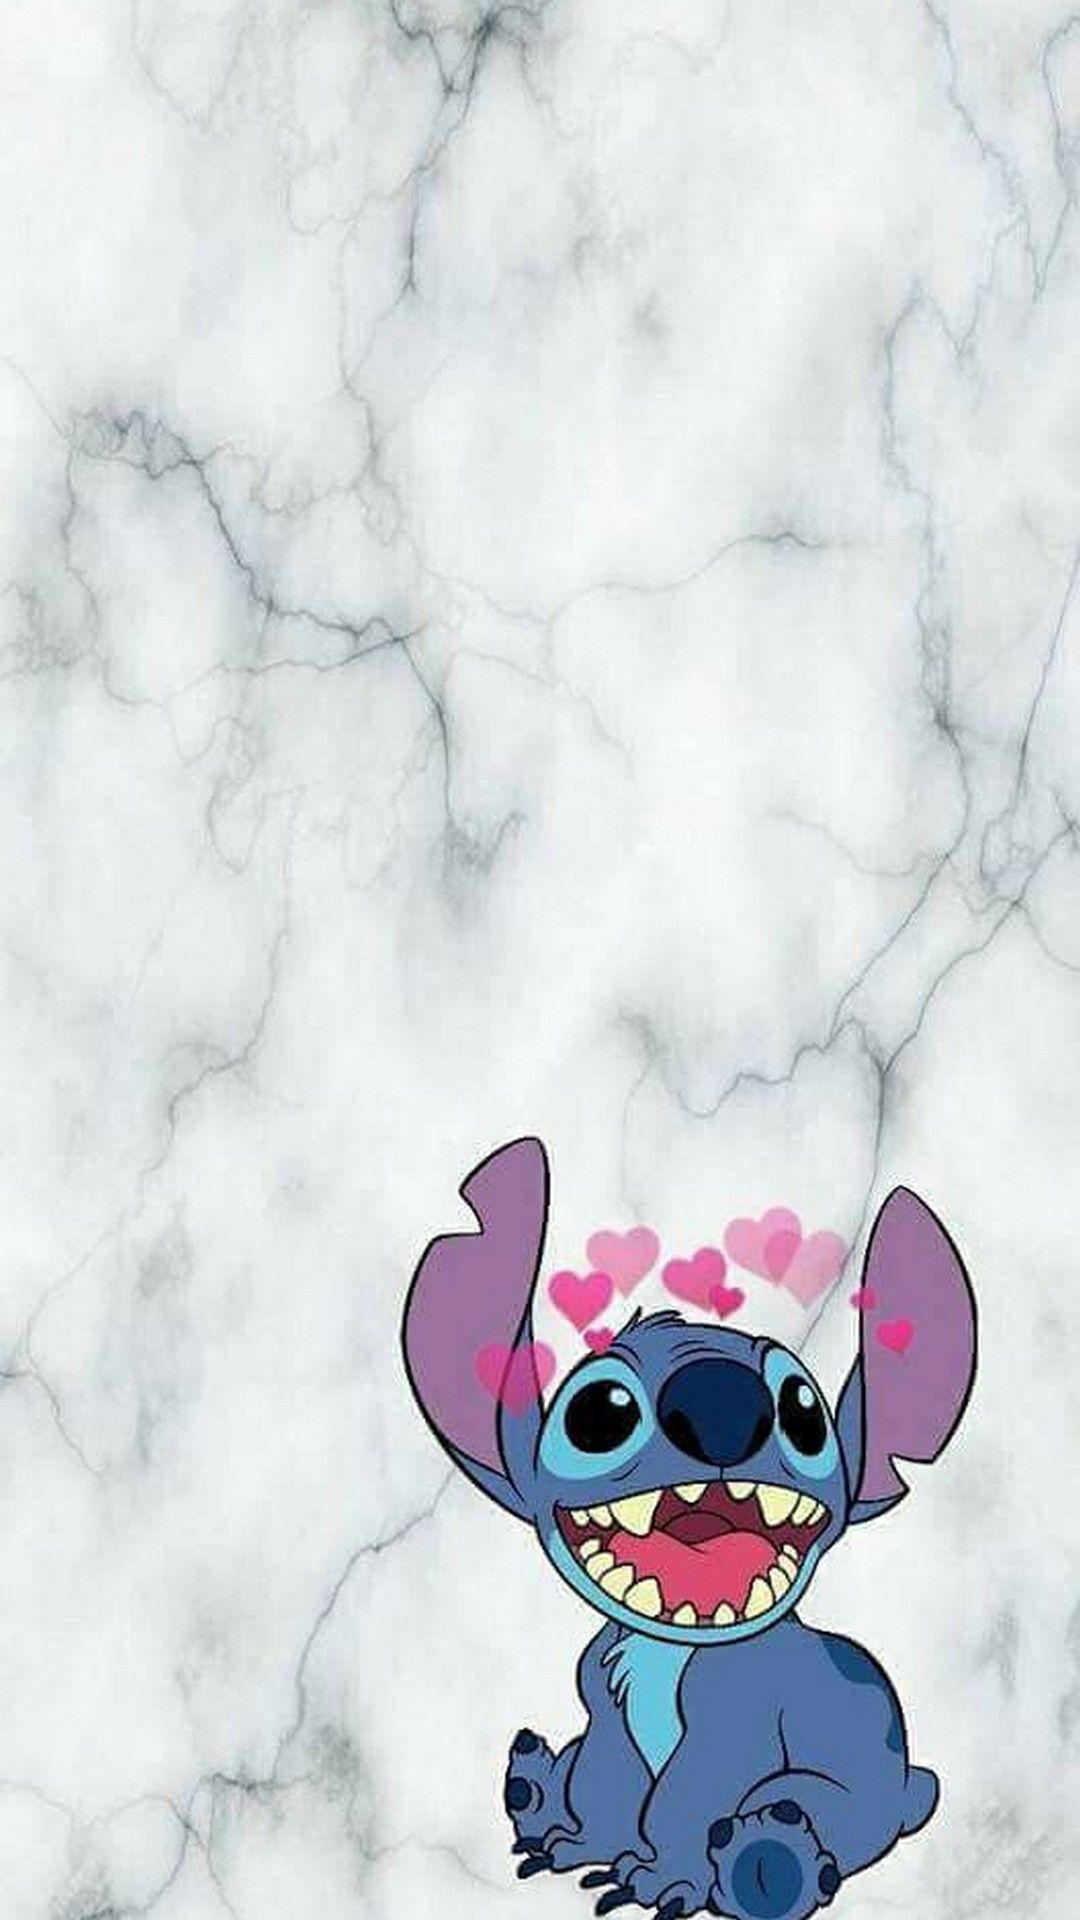 Cute Stitch iPhone Fondos de pantalla - Top gratis Cute Stitch iPhone